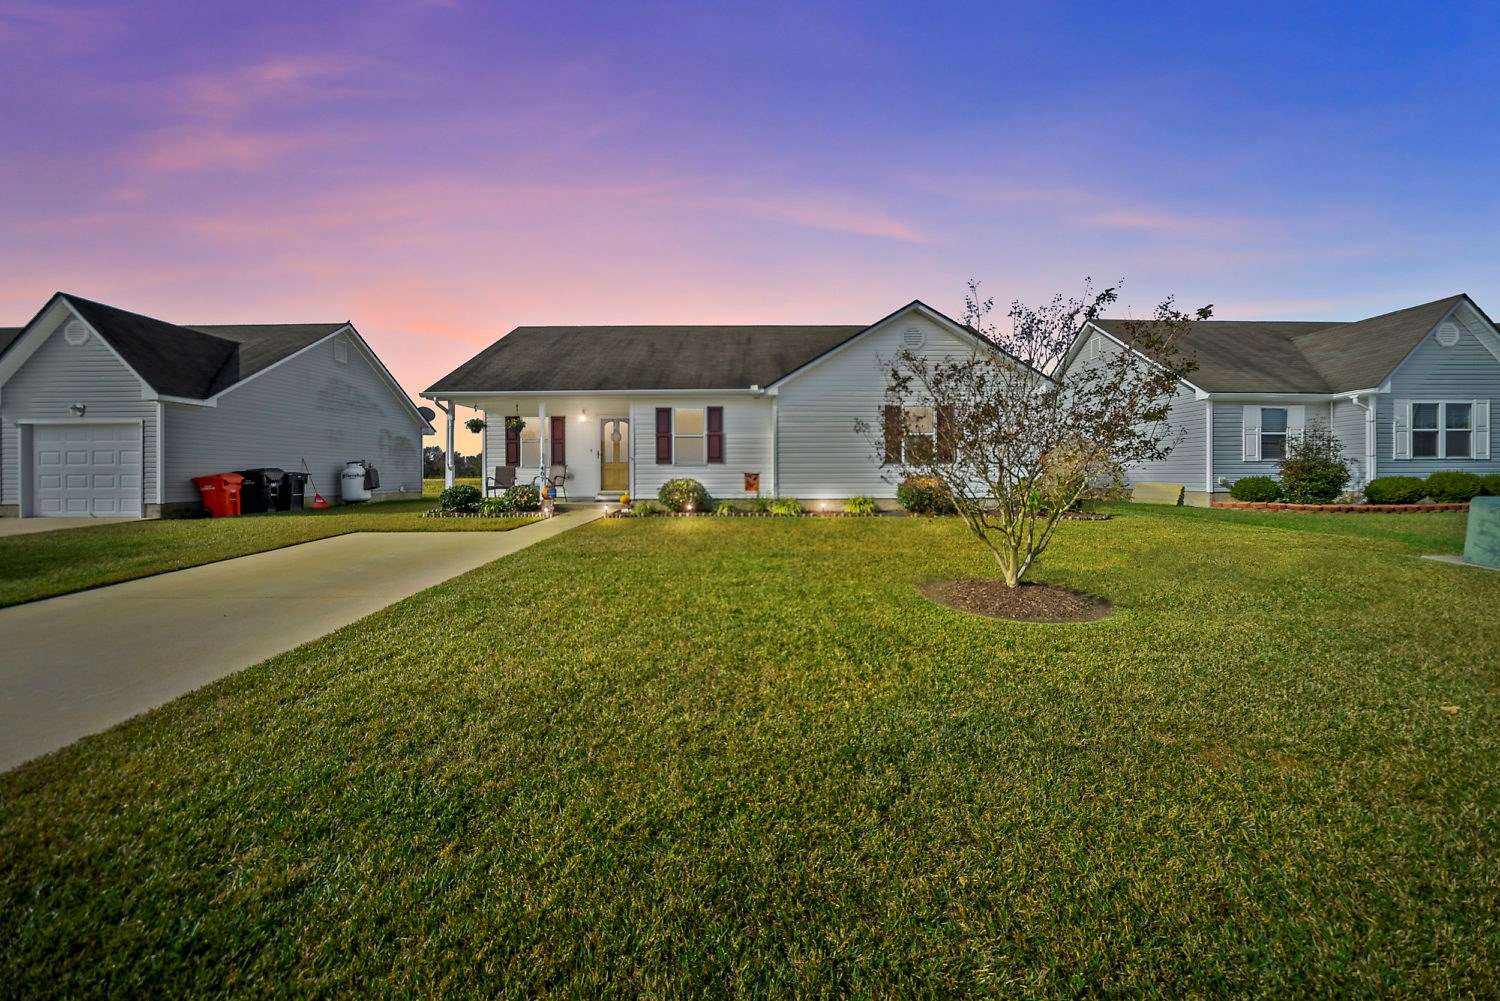 3 Bedroom, 2 Bath home in Summerfield